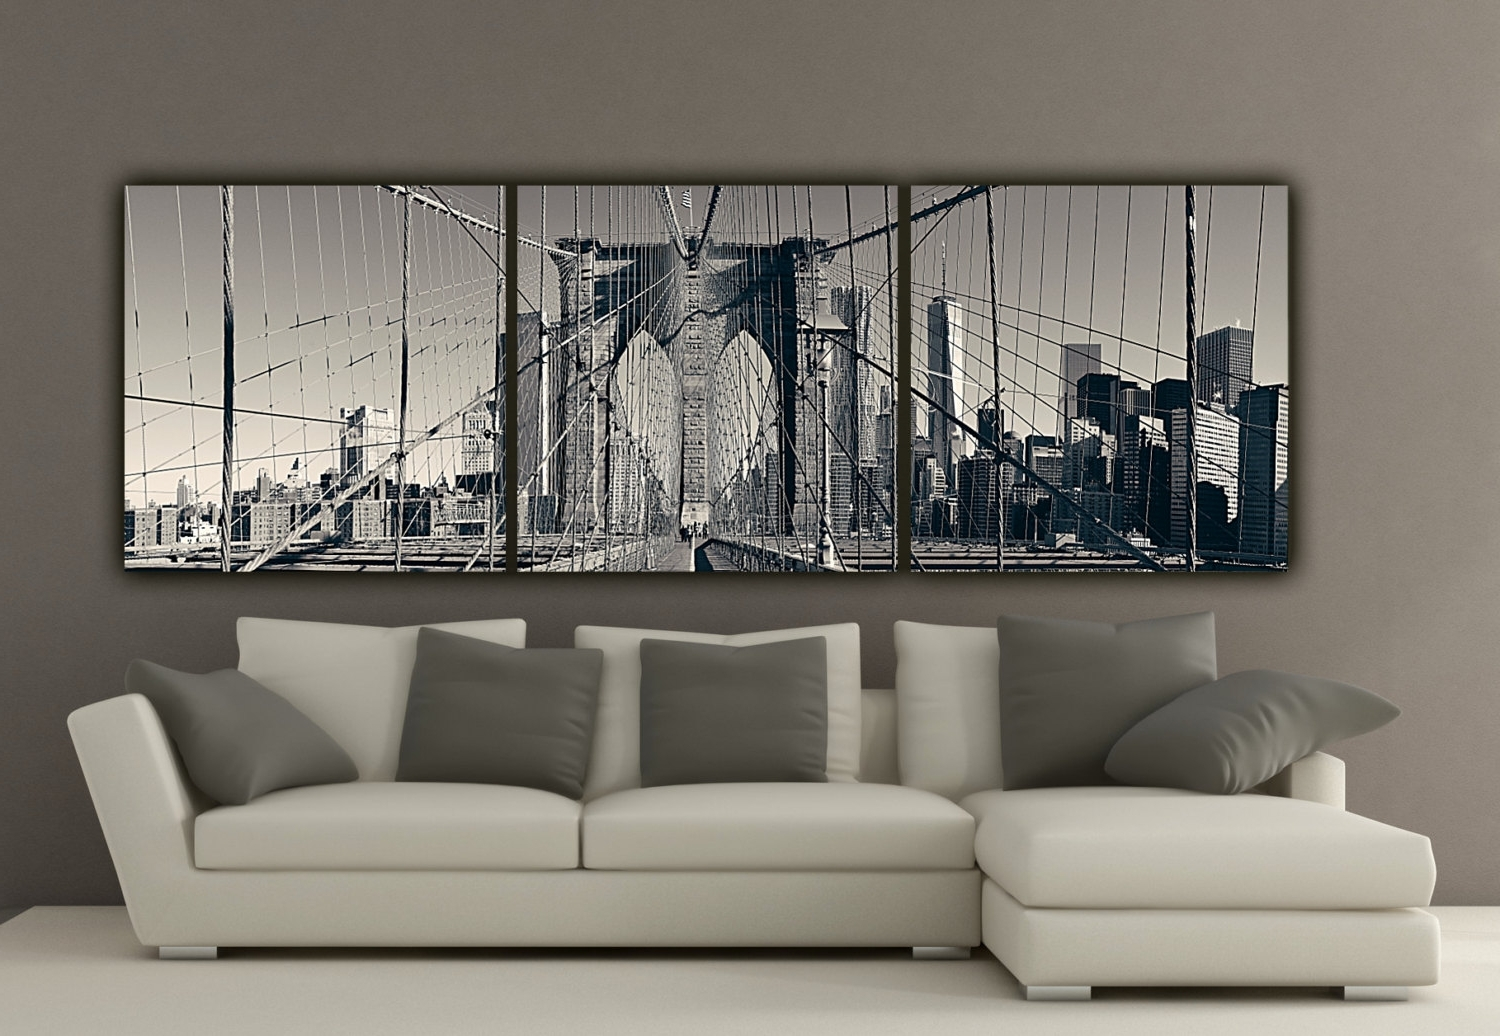 Modern Large Canvas Wall Art Throughout Most Up To Date Decor: Surprising Large Canvas Wall Art For Wall Décor Ideas (View 8 of 15)